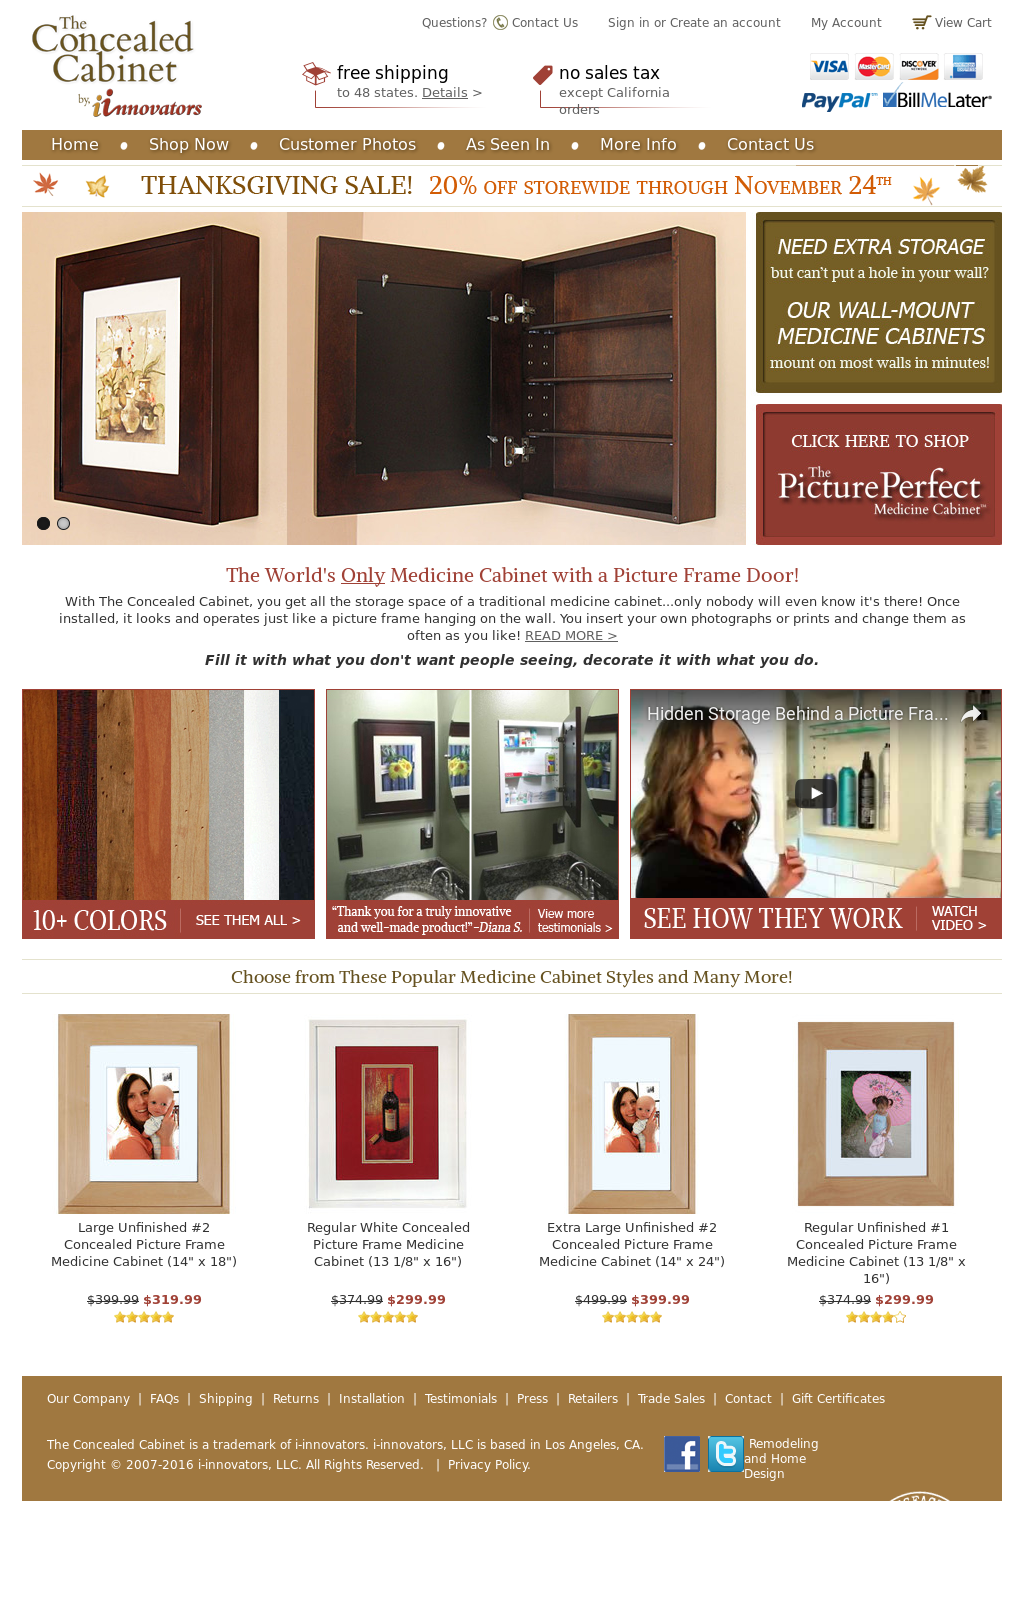 The Concealed Cabinet By I Innovators Competitors, Revenue And Employees    Owler Company Profile